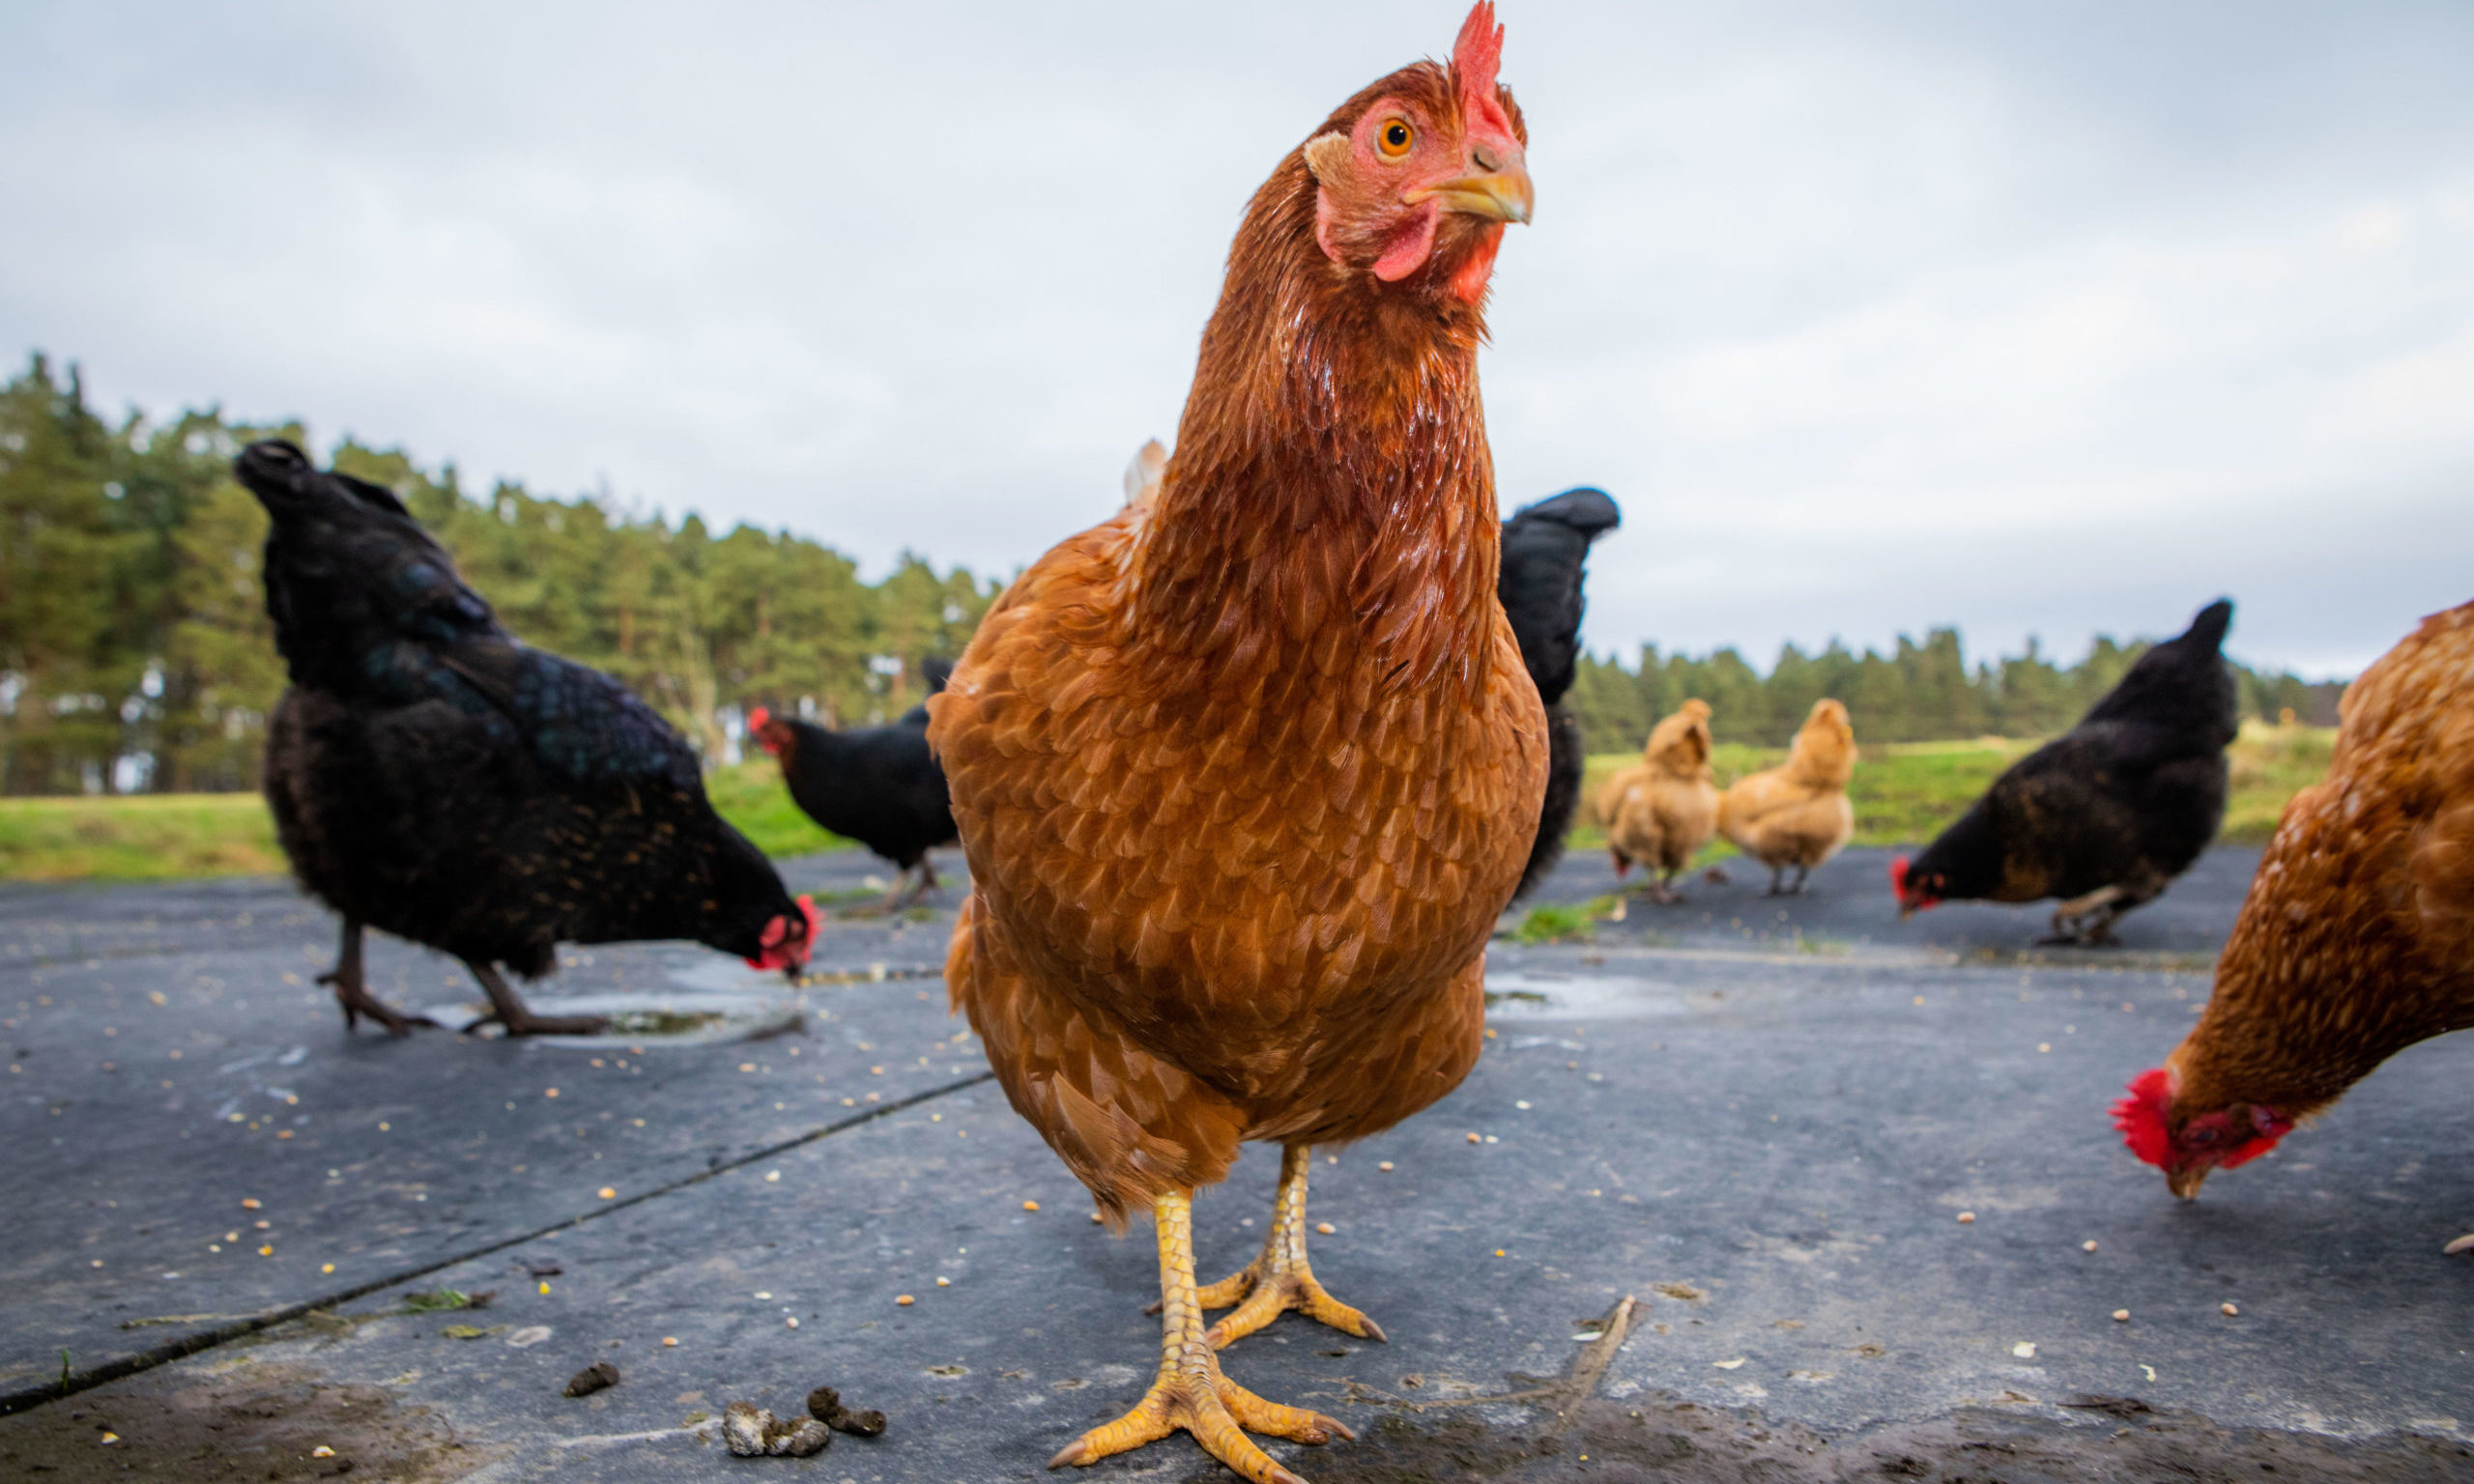 Up to 26,000 birds could be accommodated at a new poultry farm near Murthly.